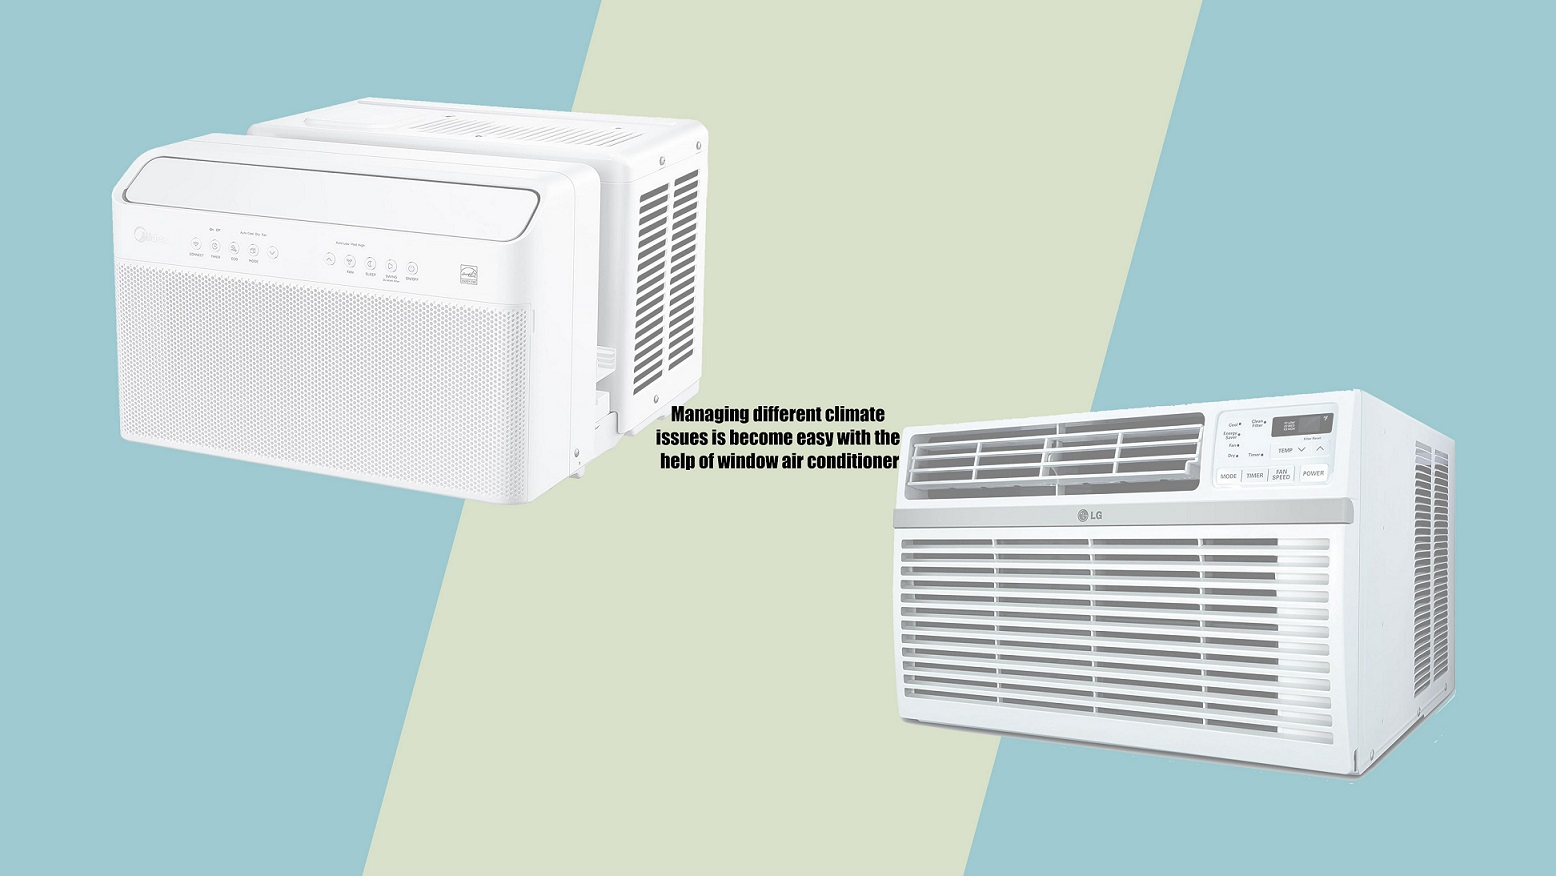 Managing different climate issues is become easy with the help of window air conditioner